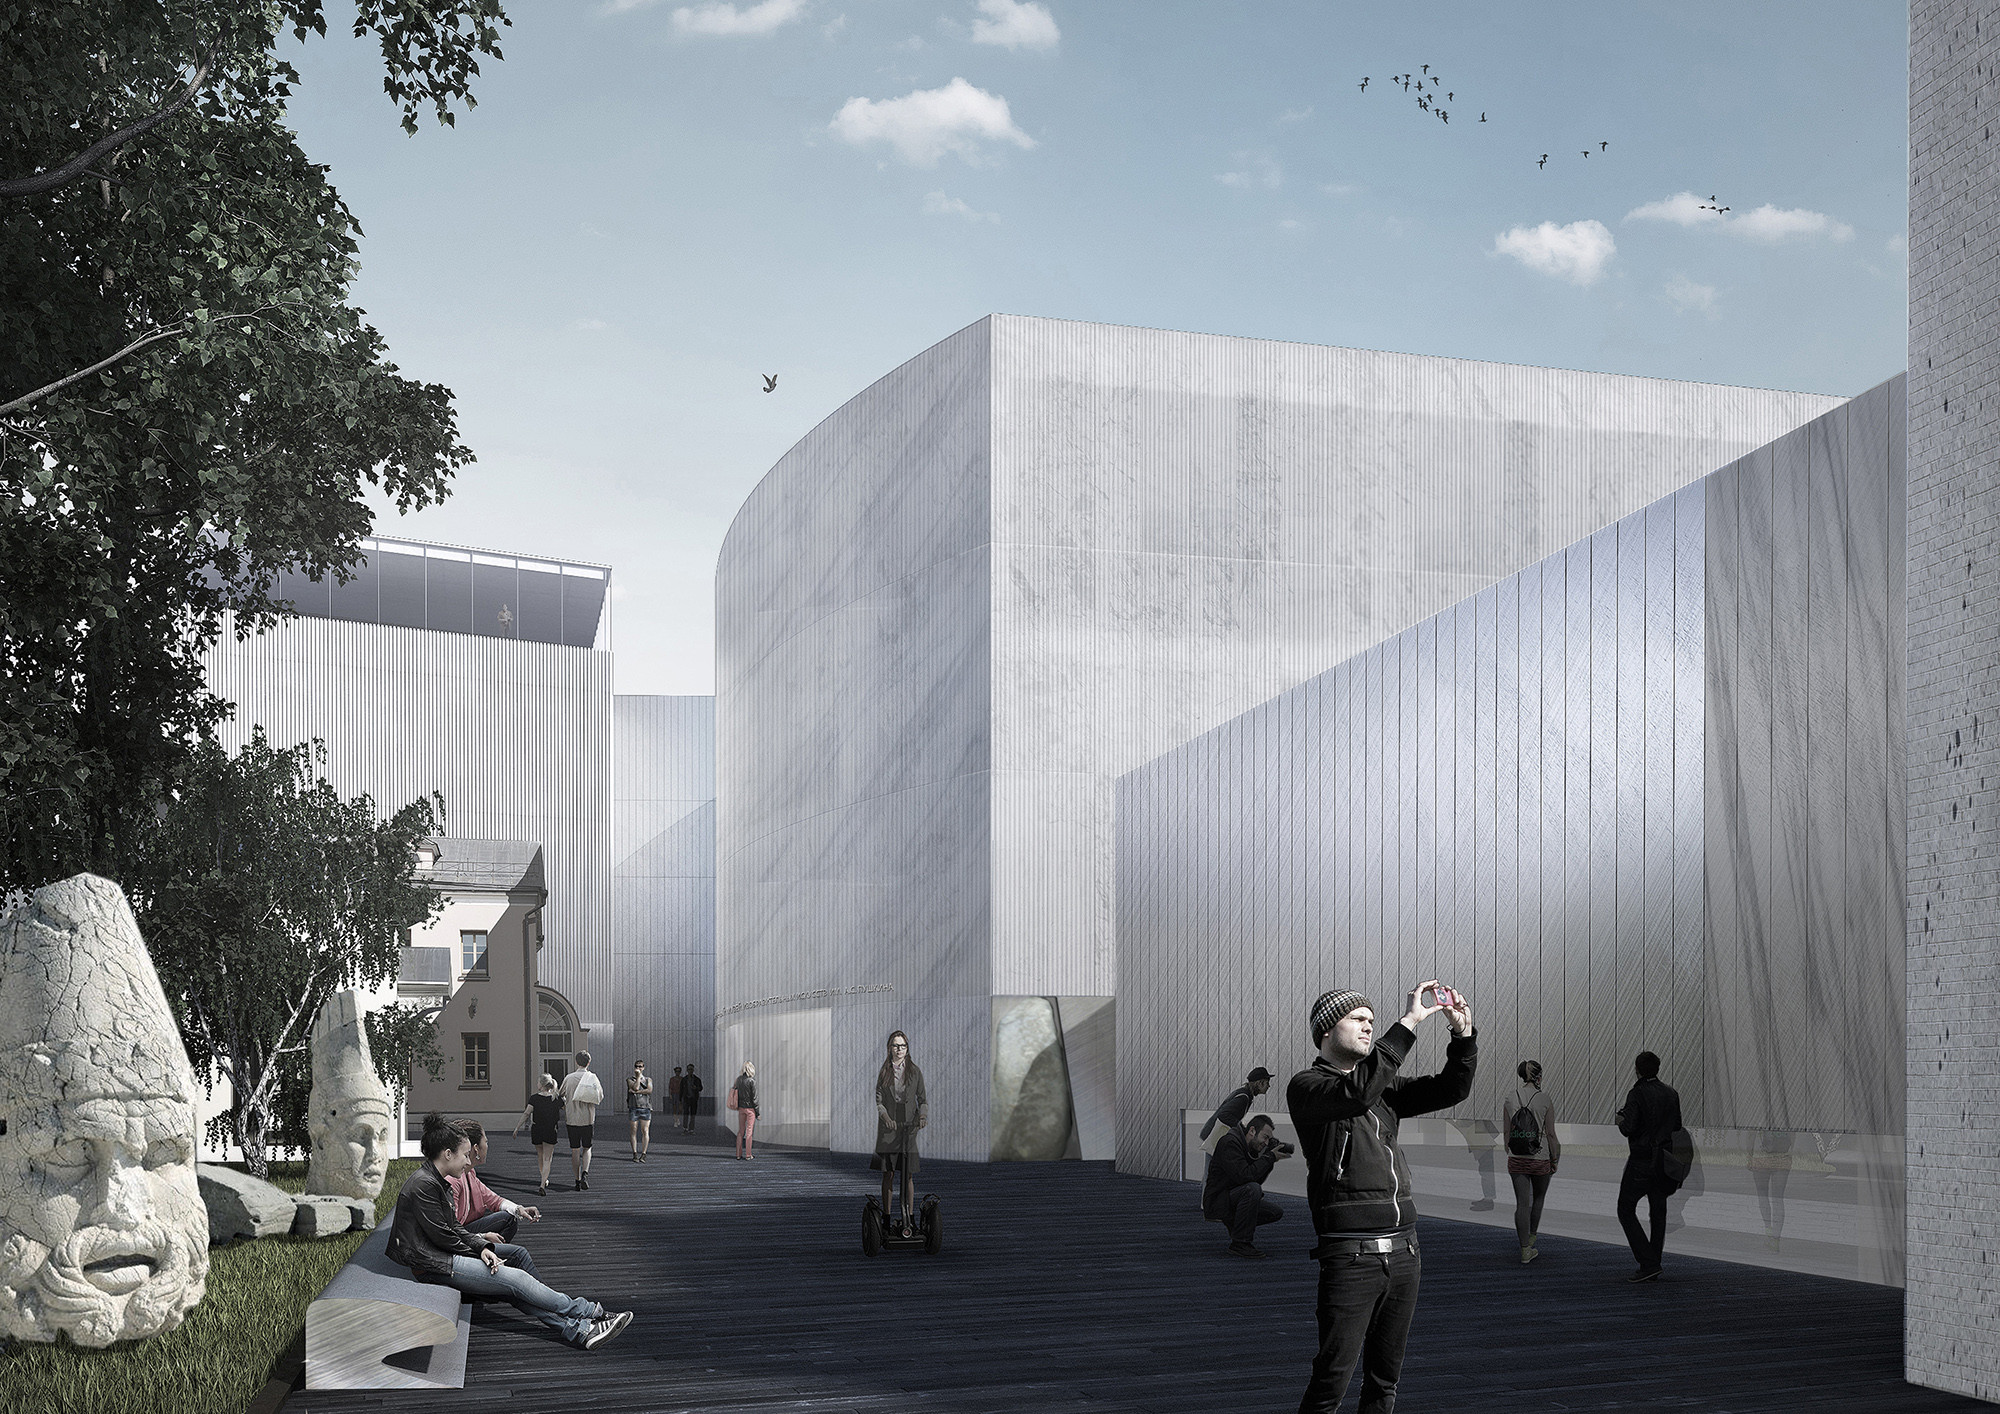 Project Meganom To Remodel Moscow's Pushkin Museum of Fine Arts, Courtesy of Project Meganom